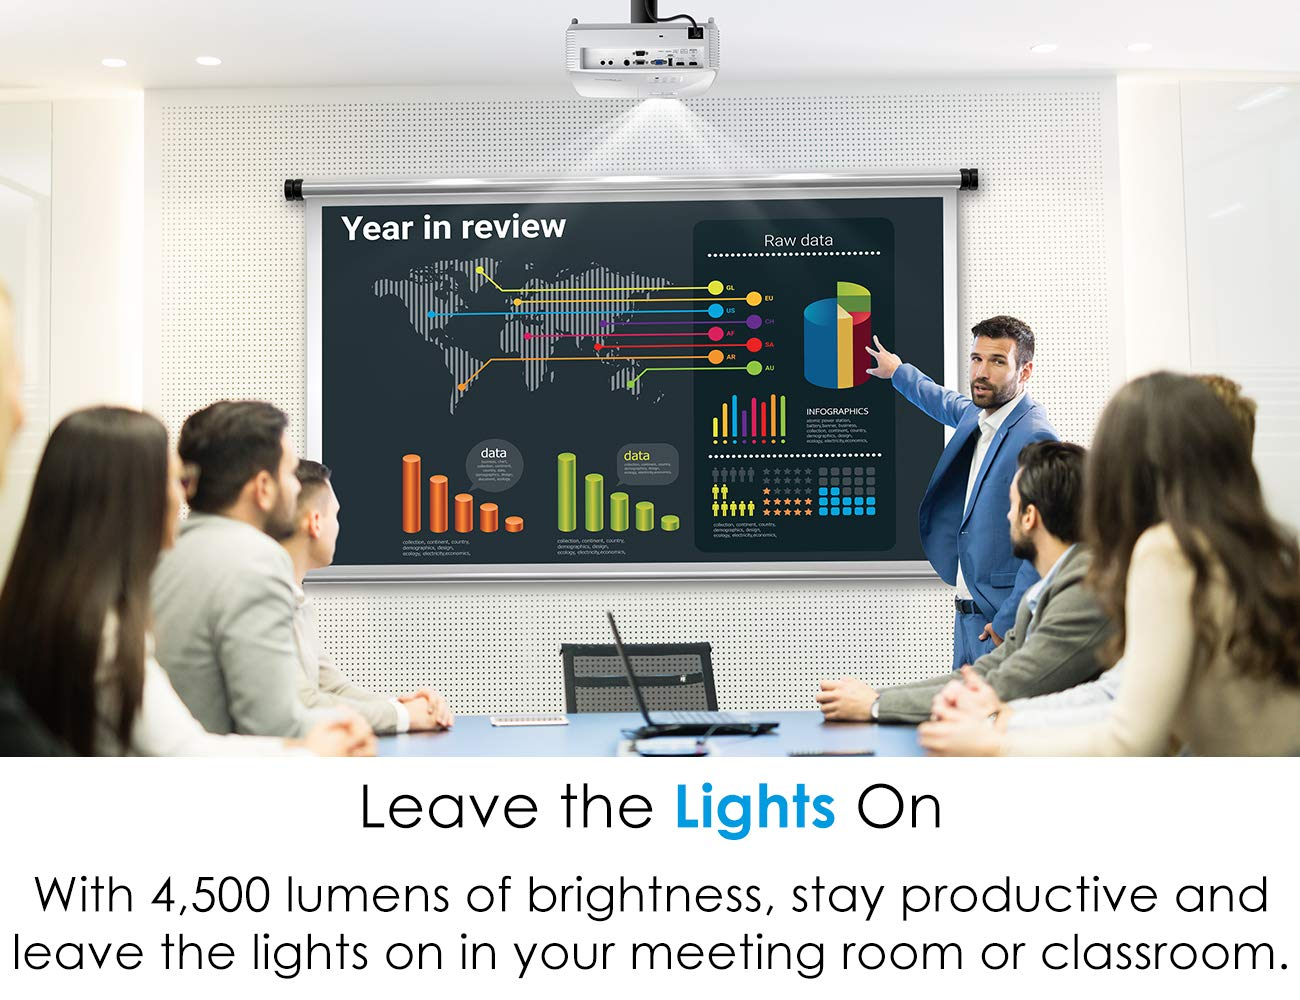 Optoma EH412 1080P DLP Professional Projector | Super Bright 4500 Lumens | Business Presentations, Classrooms, and Meeting Rooms | 15,000 Hour lamp Life | 4K HDR Input | Speaker Built in by Optoma (Image #5)